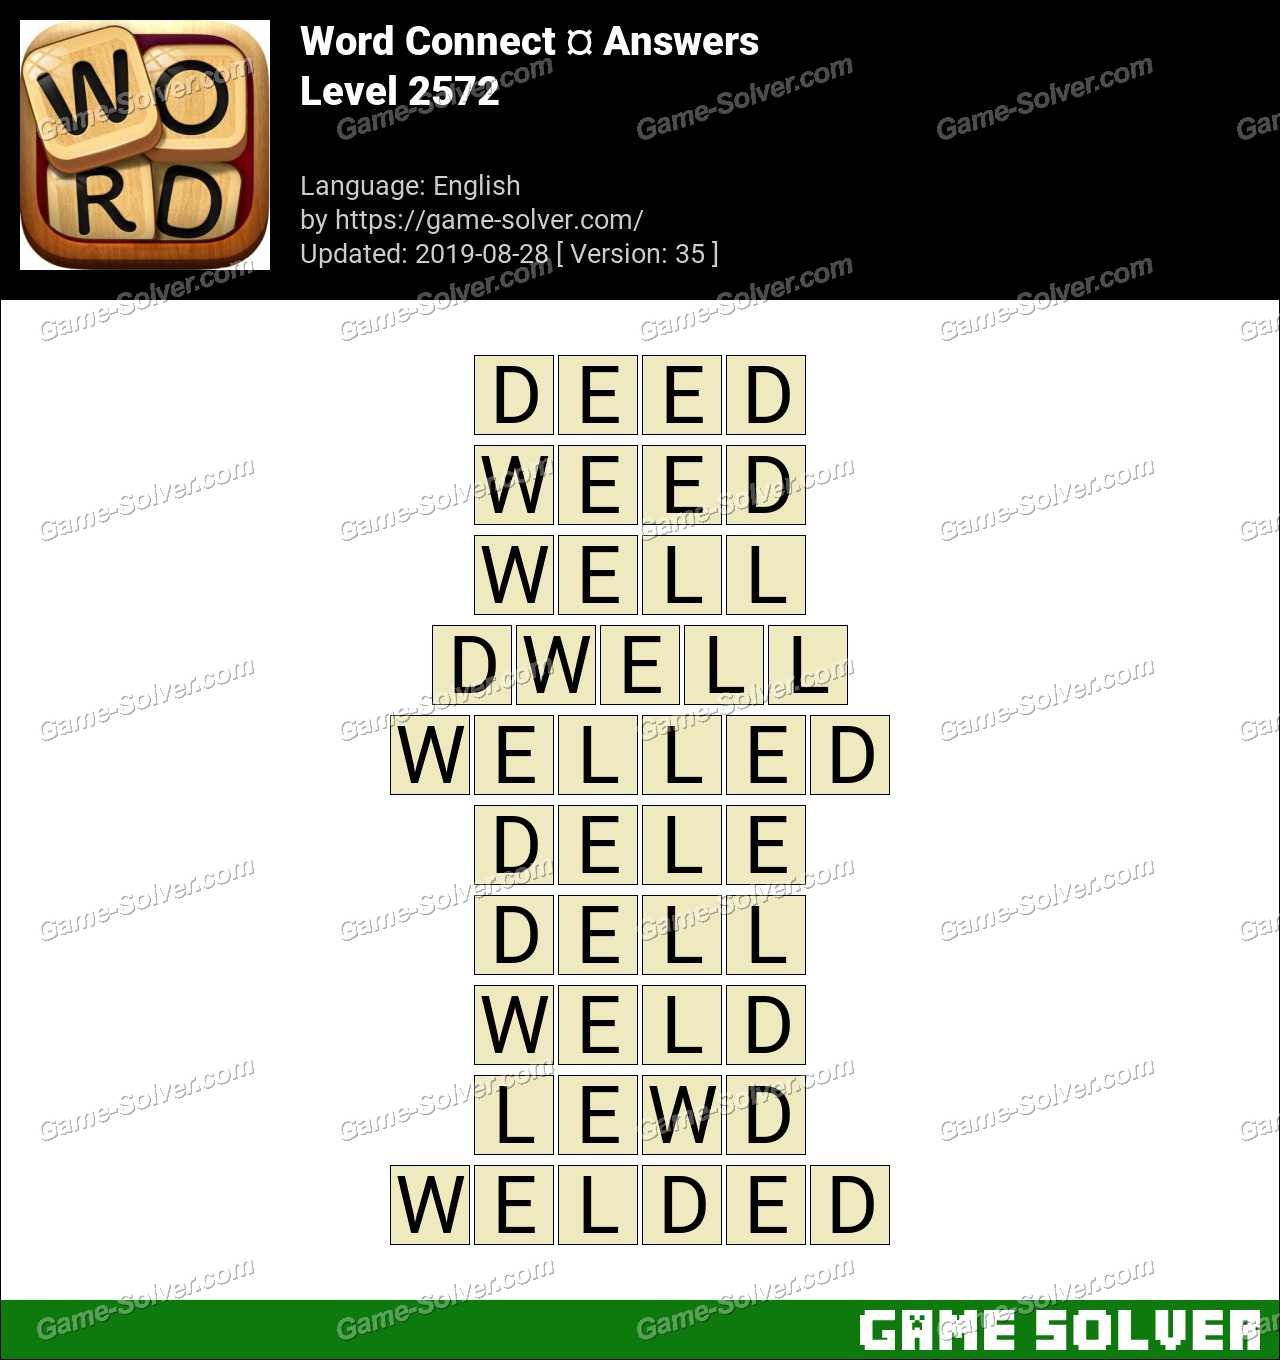 Word Connect Level 2572 Answers